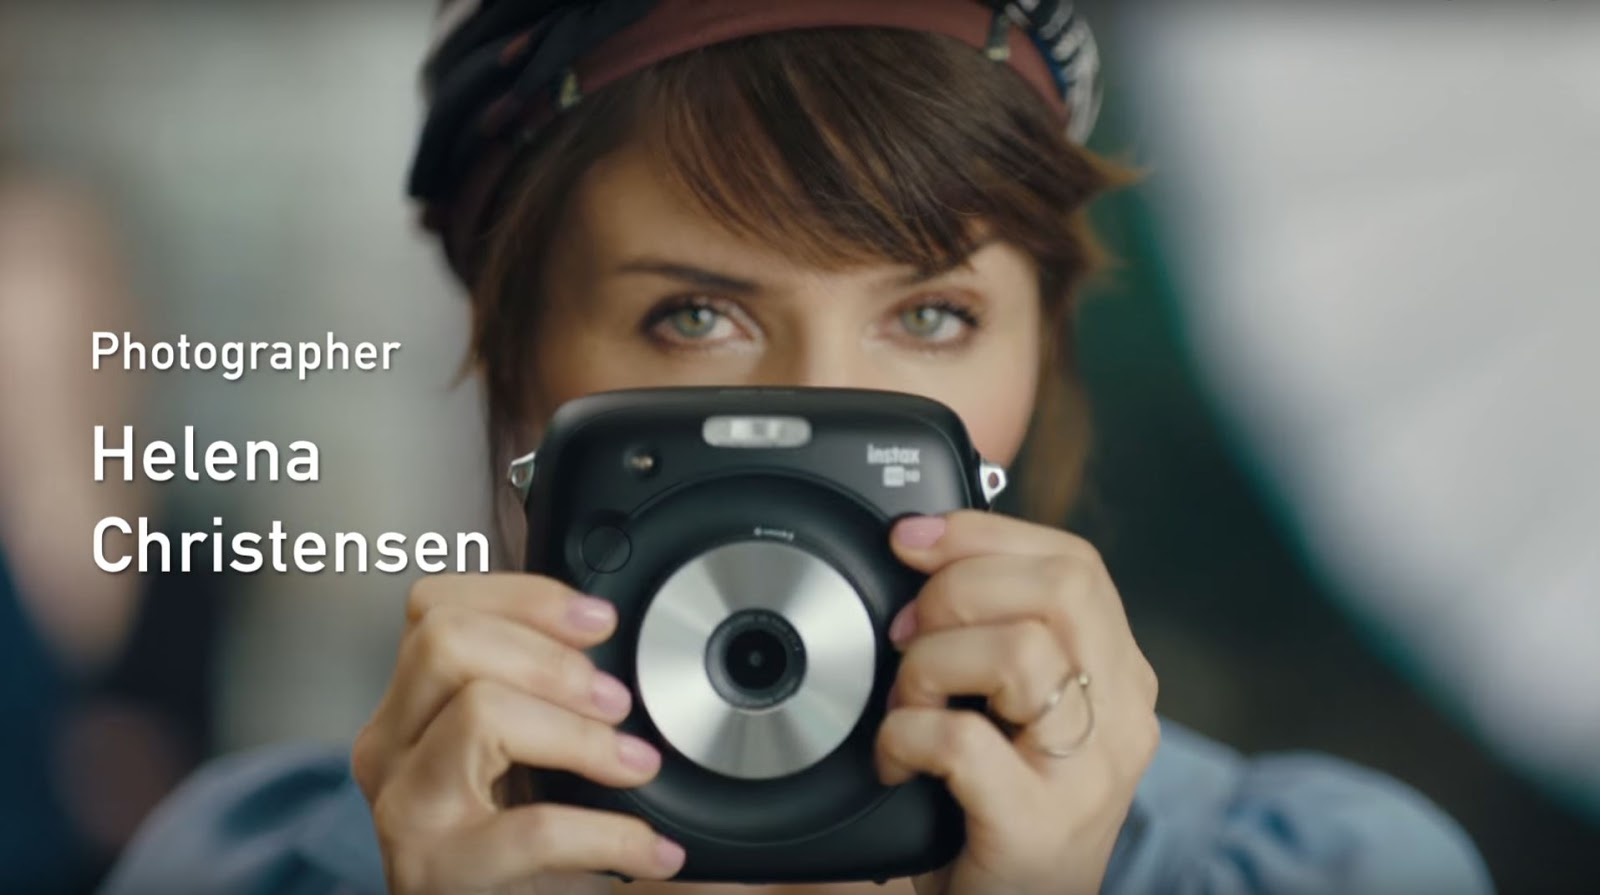 PHOTOGRAPHER HELENA CHRISTENSEN AND FUJI SQ10